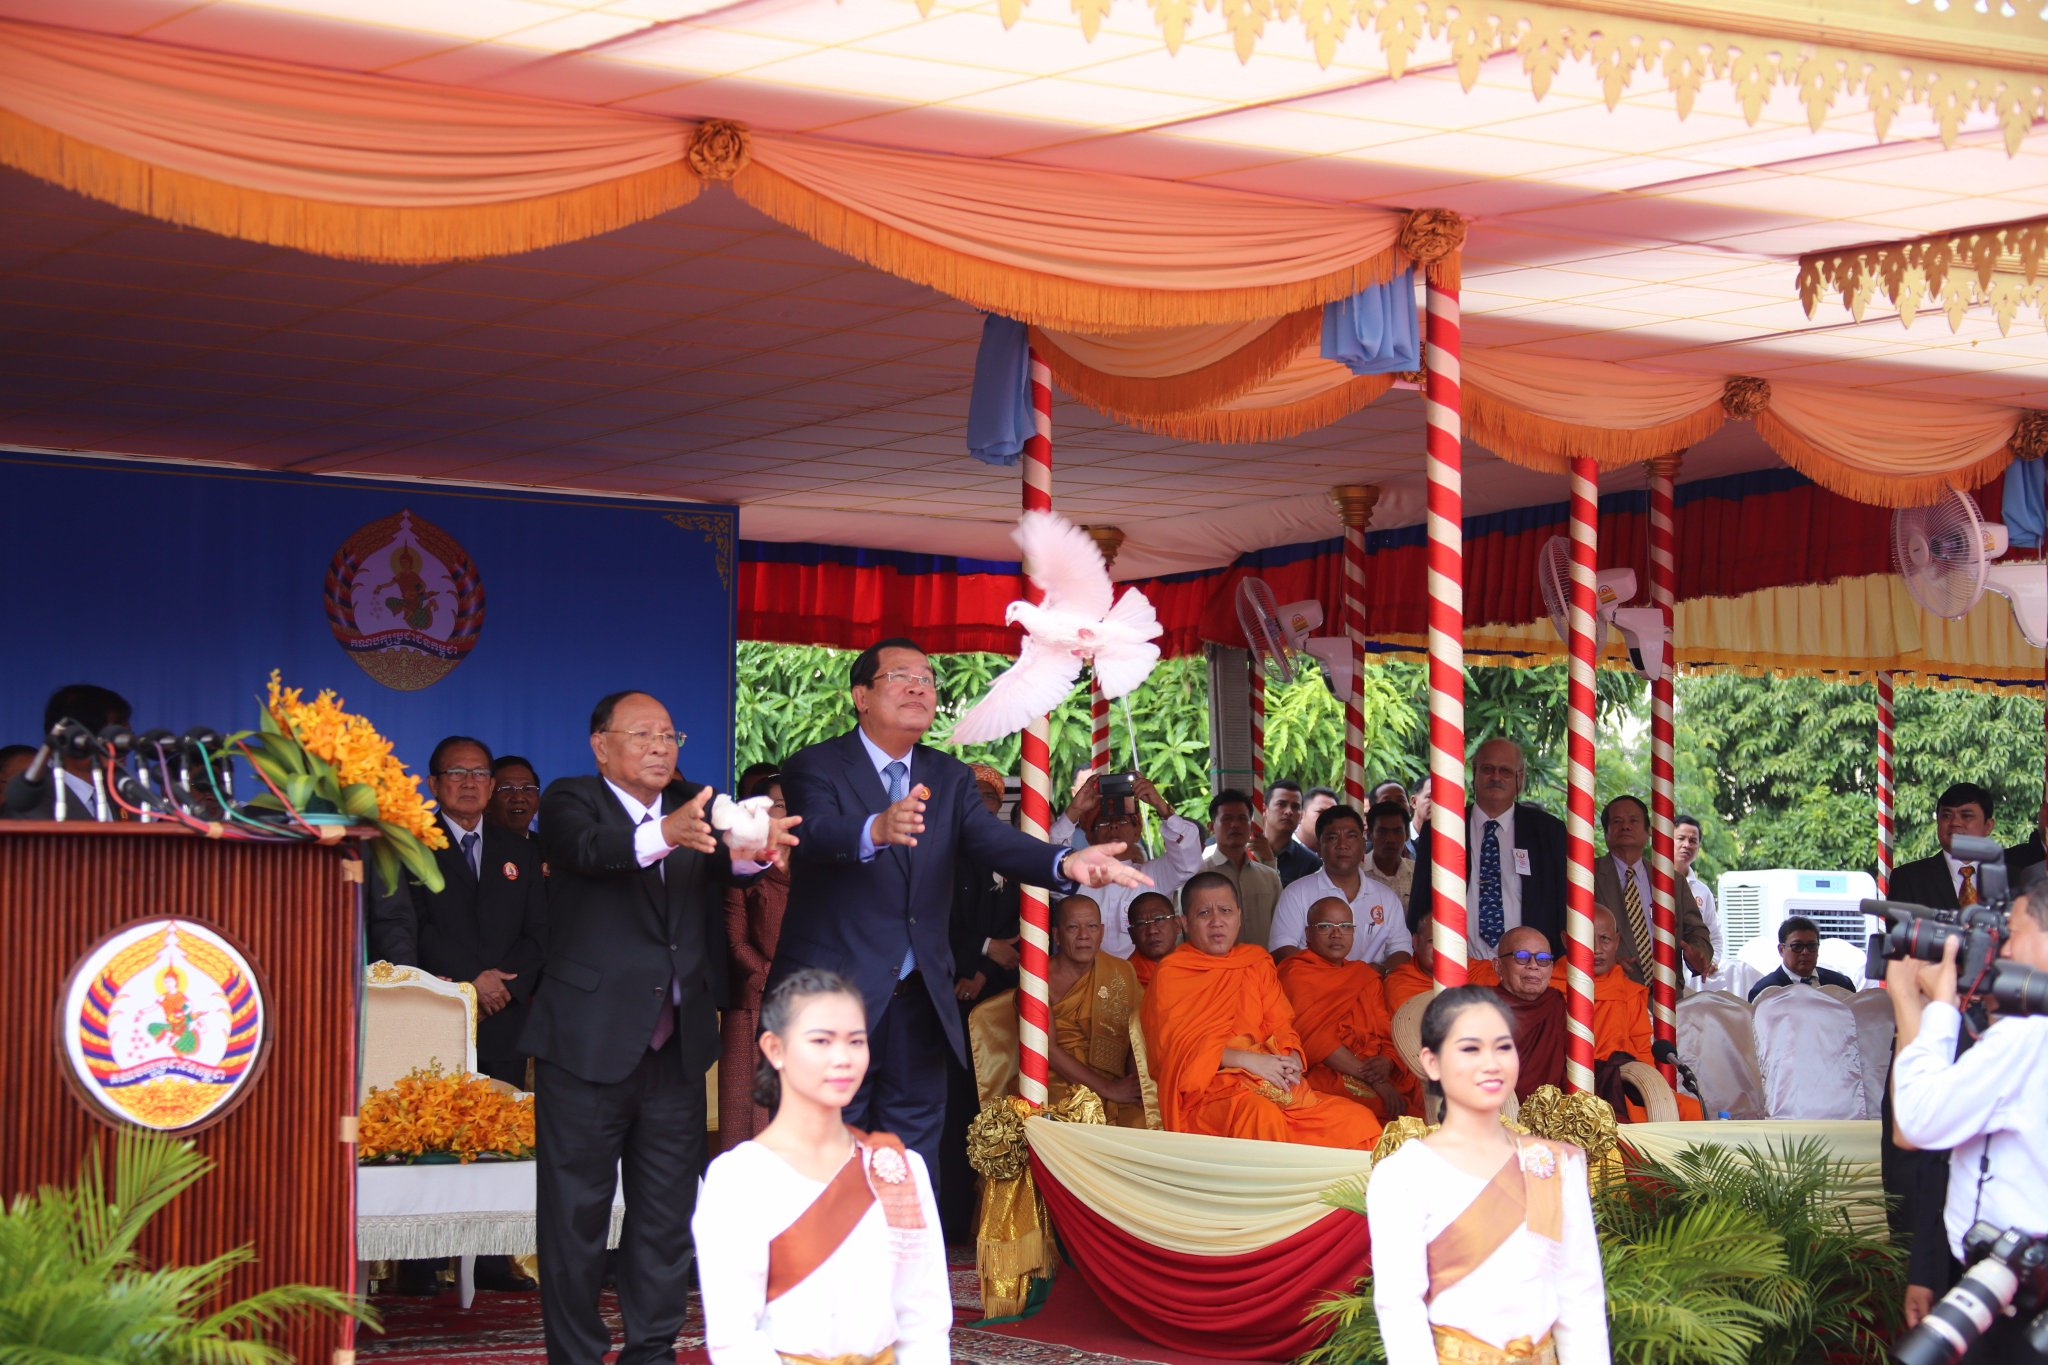 Thumbnail for Celebration of the 66th Anniversary of Cambodia People's Party